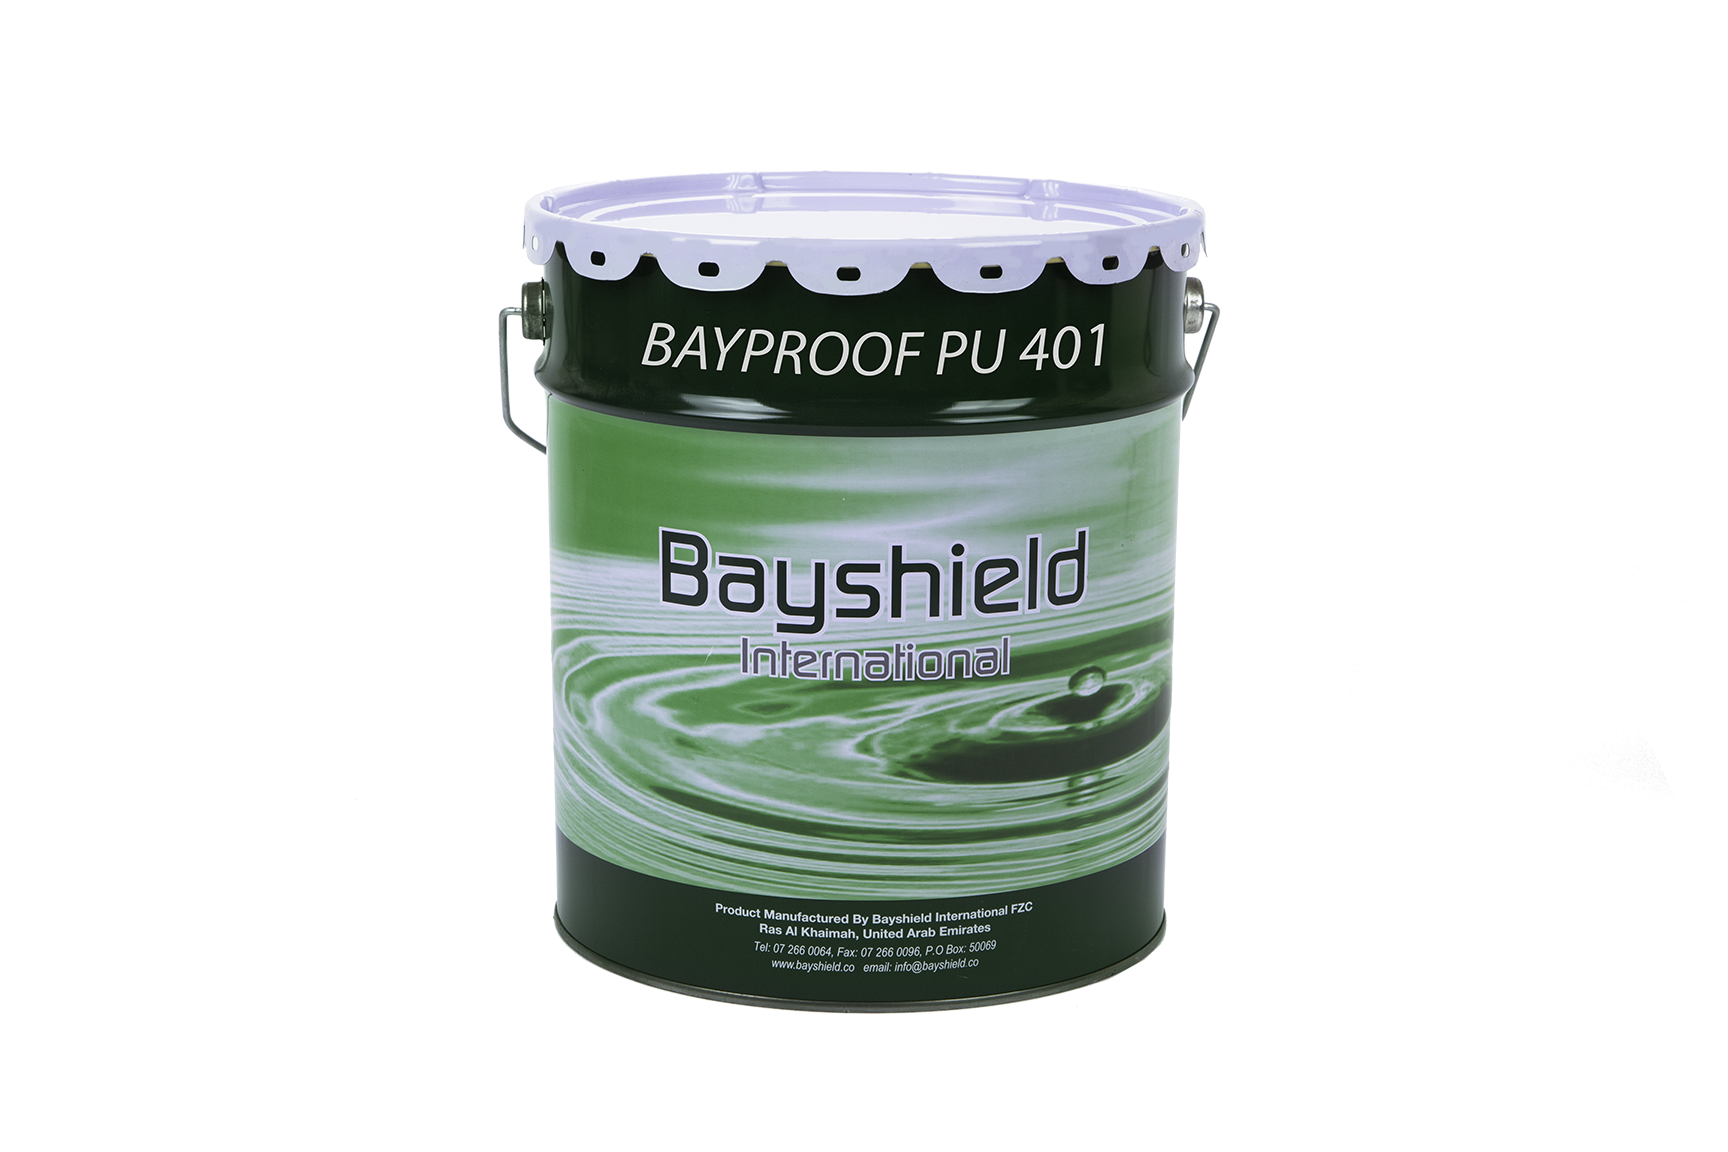 Bayshield Website